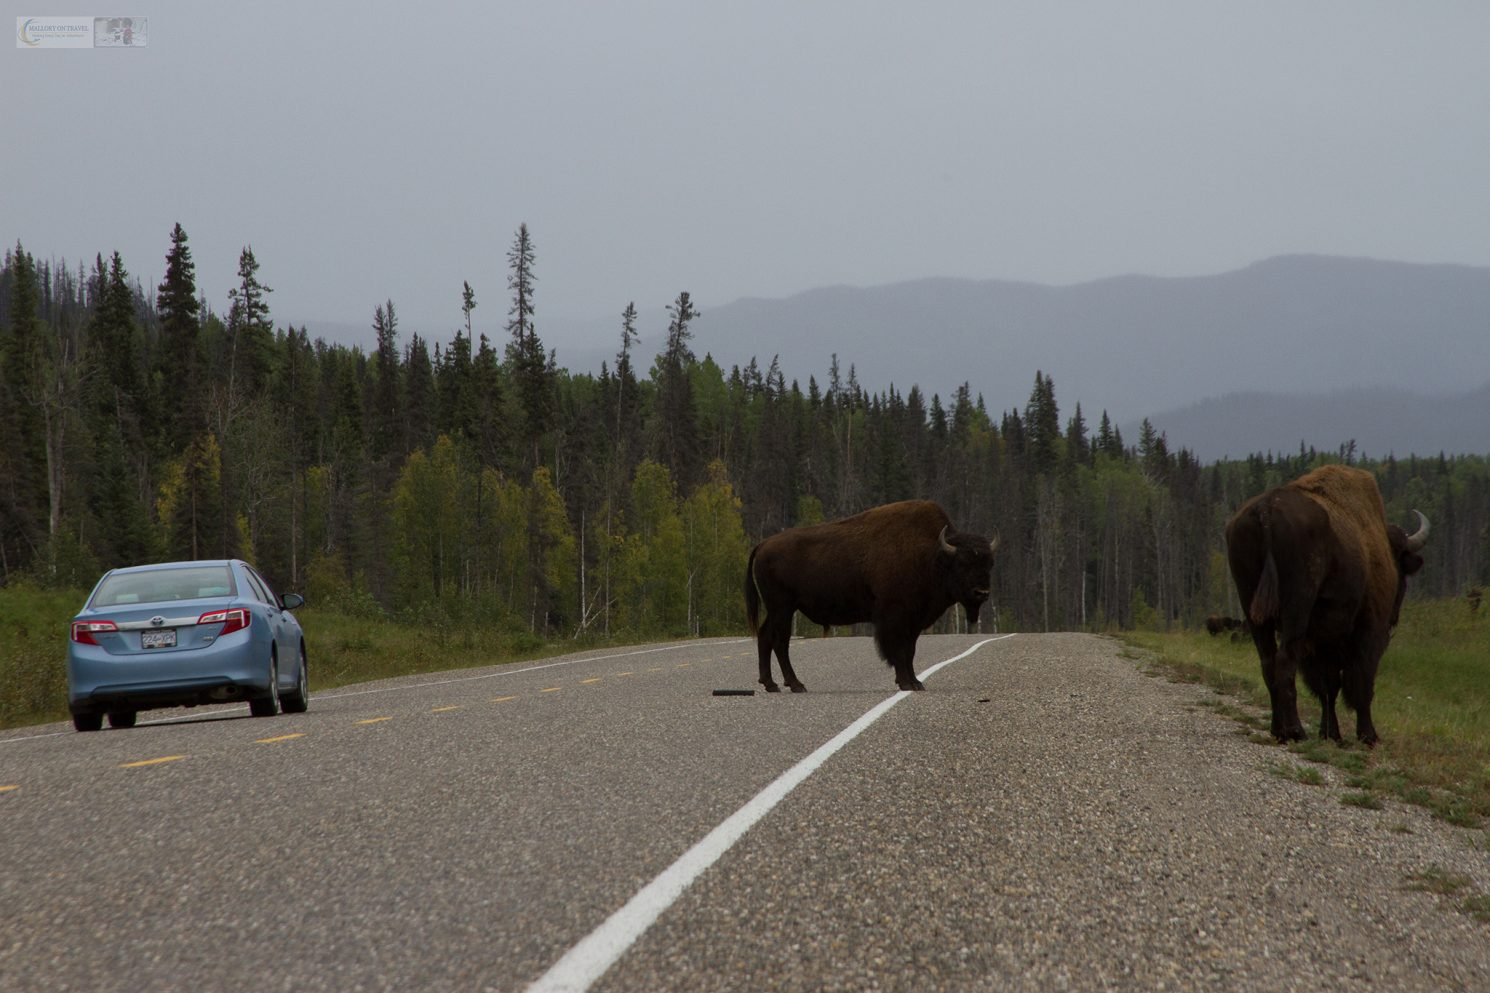 Bison on the Alaska Highway, the road from Watson Lake in British Columbia, Canada on Mallory on Travel adventure travel, photography, travel Iain Mallory_Yukon 039